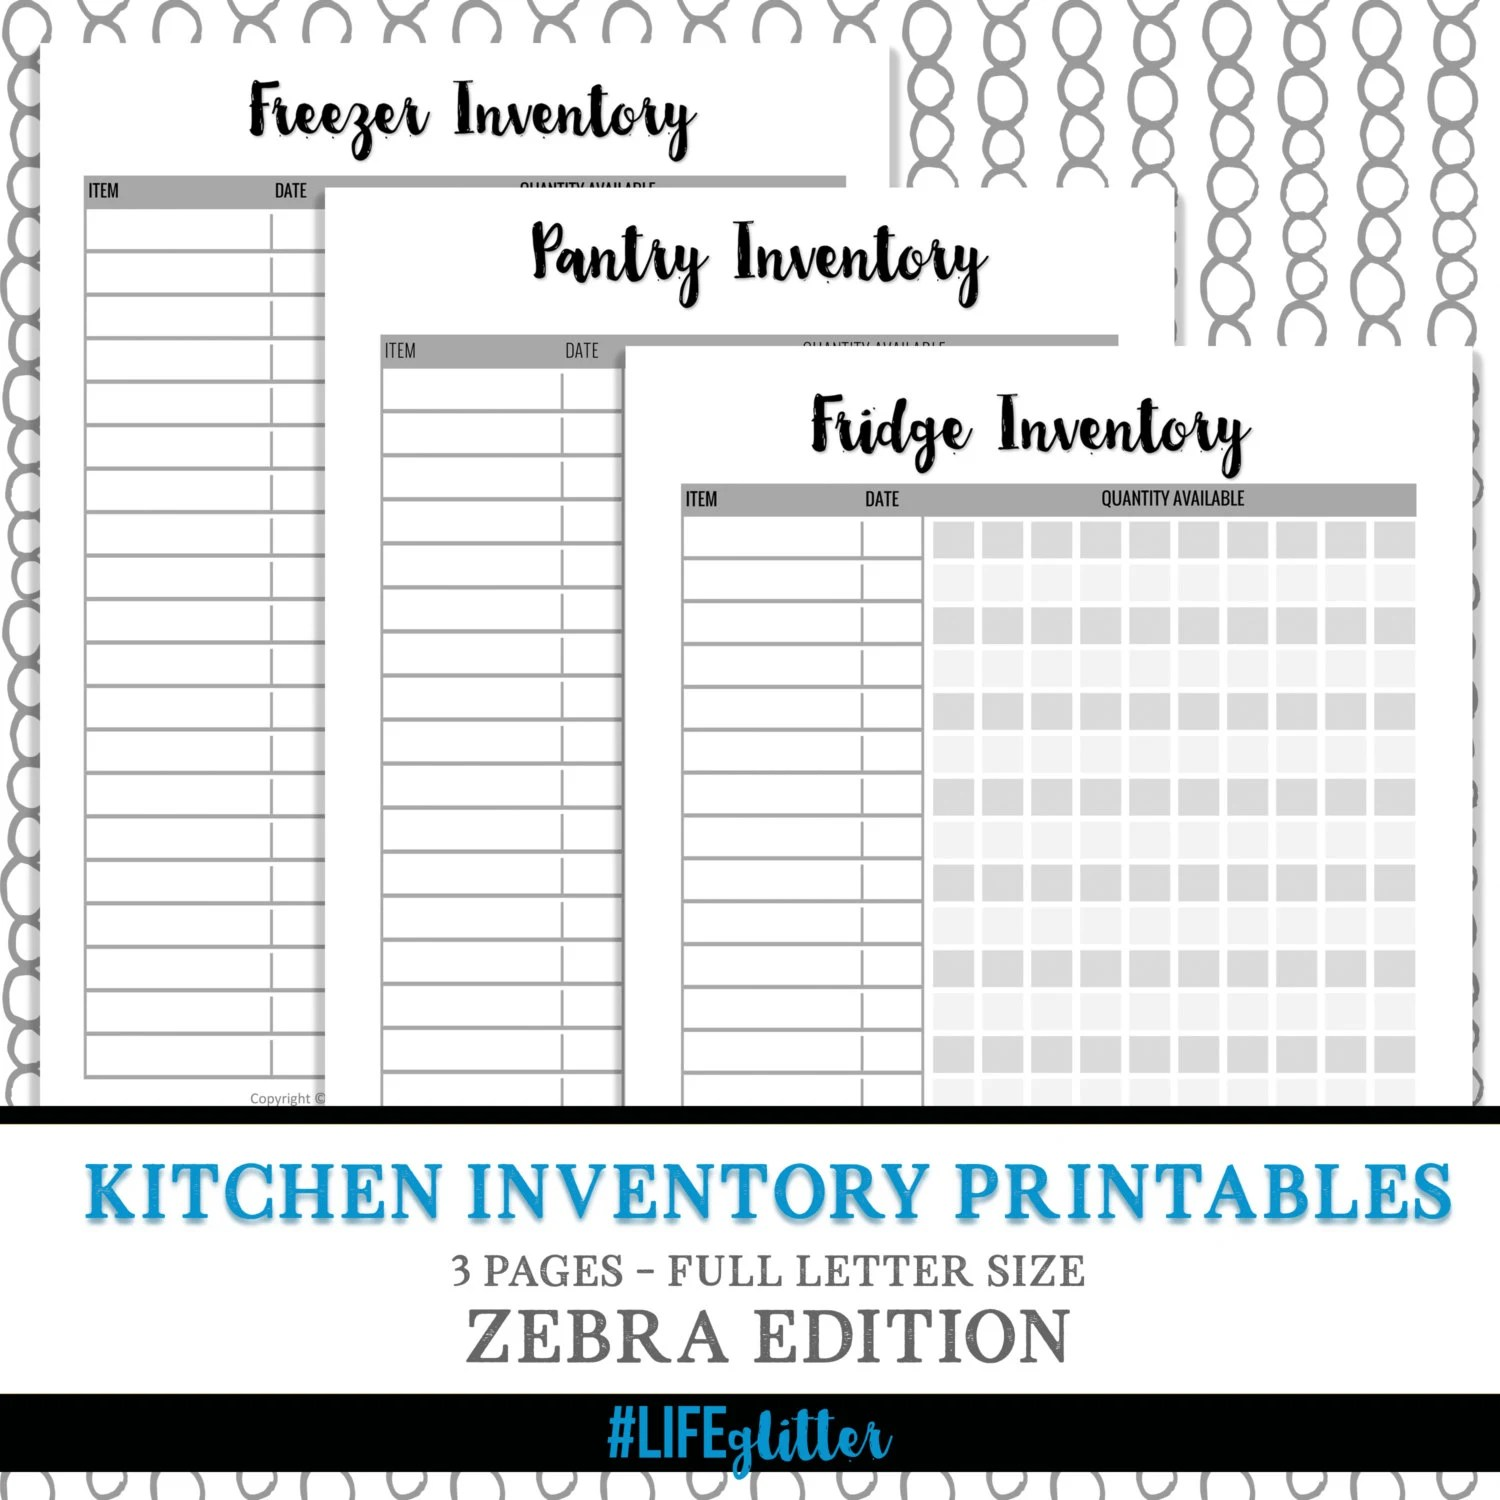 kitchen inventory home depot light fixtures organization meal plan etsy image 0